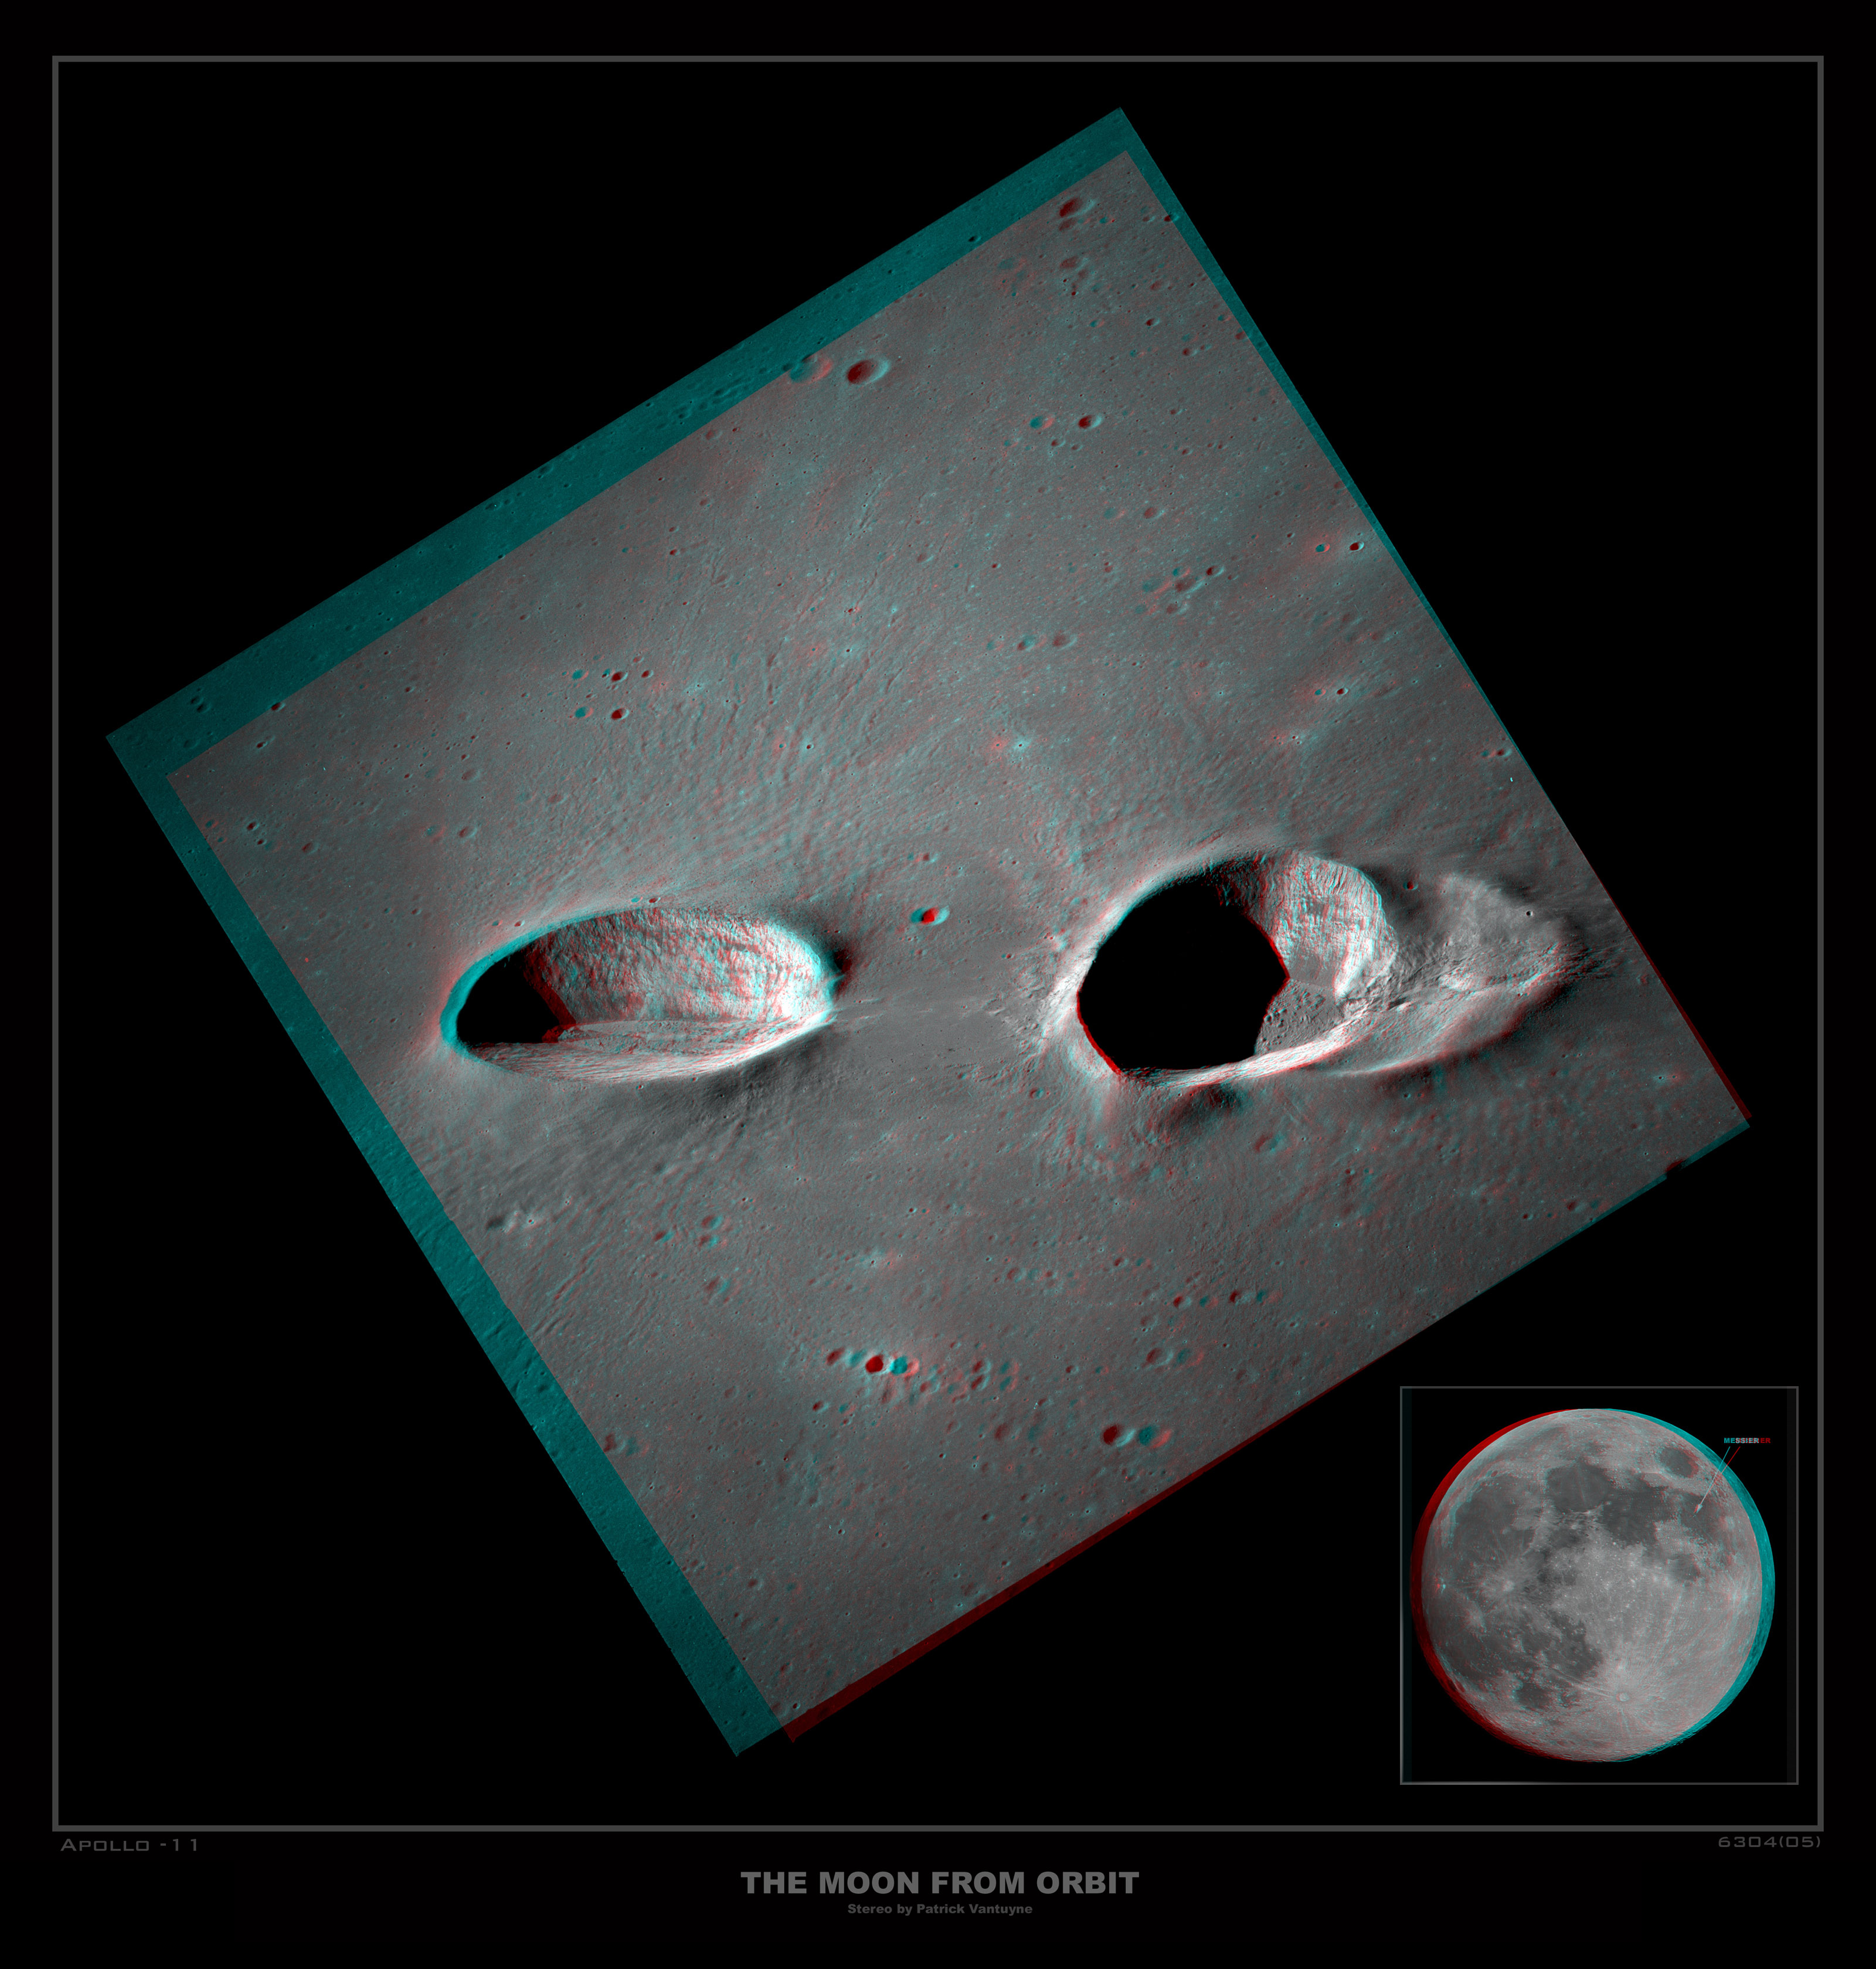 Messier Craters in Stereo